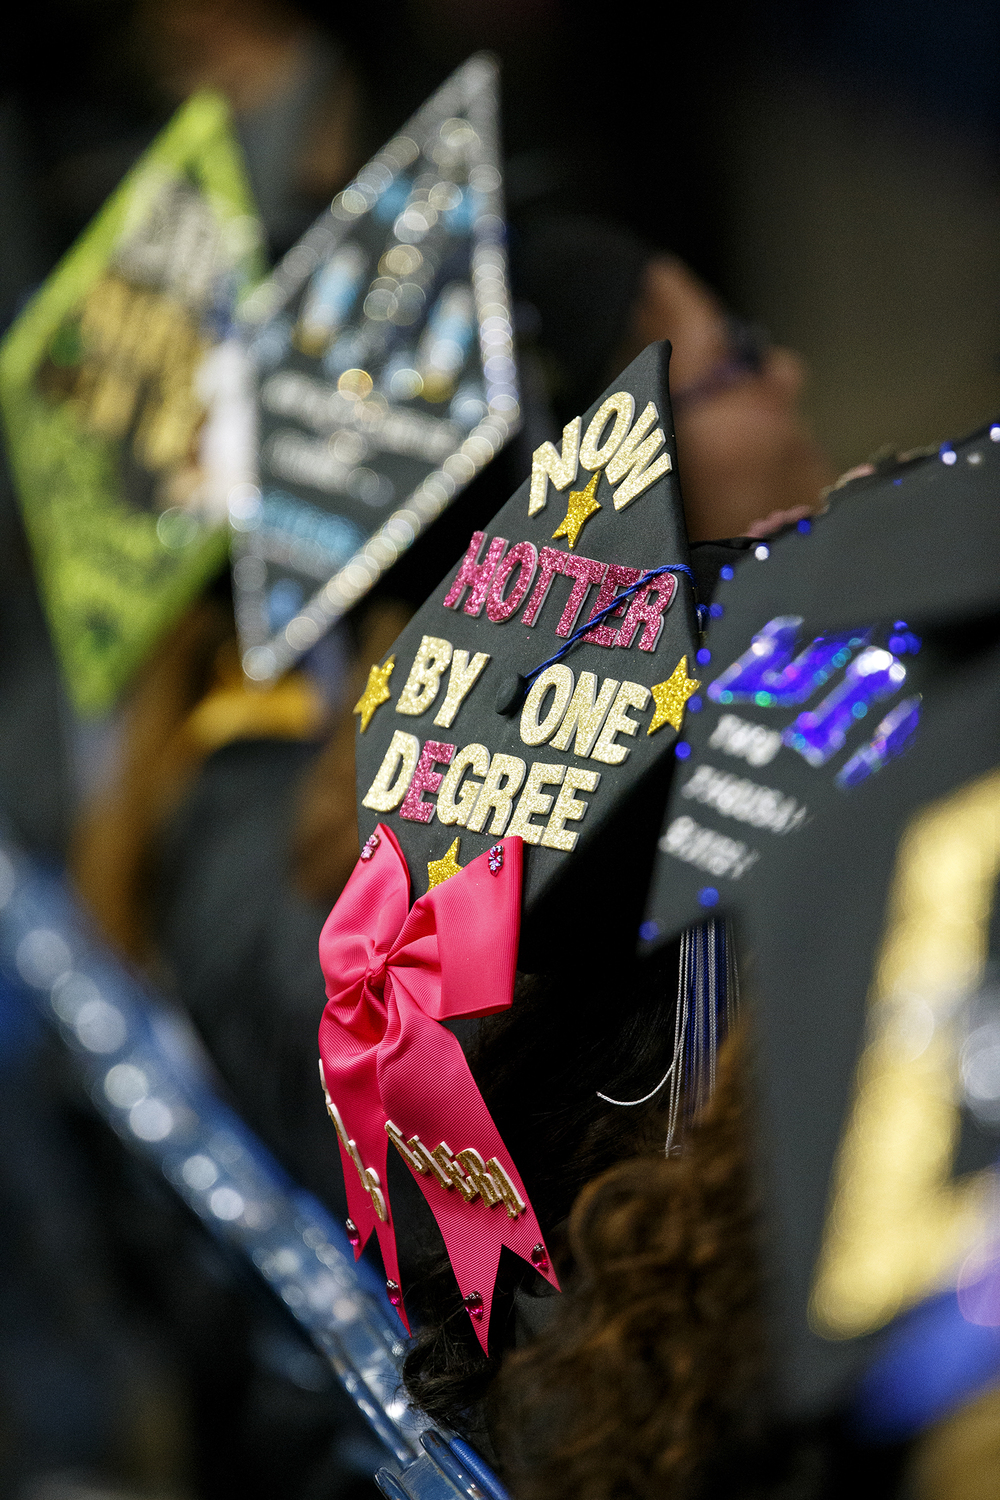 """Now hotter by one degree,"" advertised one graduates cap during the University of Illinois Springfield's 45th annual Commencement Ceremony at the Prairie Capital Convention Center Saturday, May 14, 2016. Ted Schurter/The State Journal-Register"